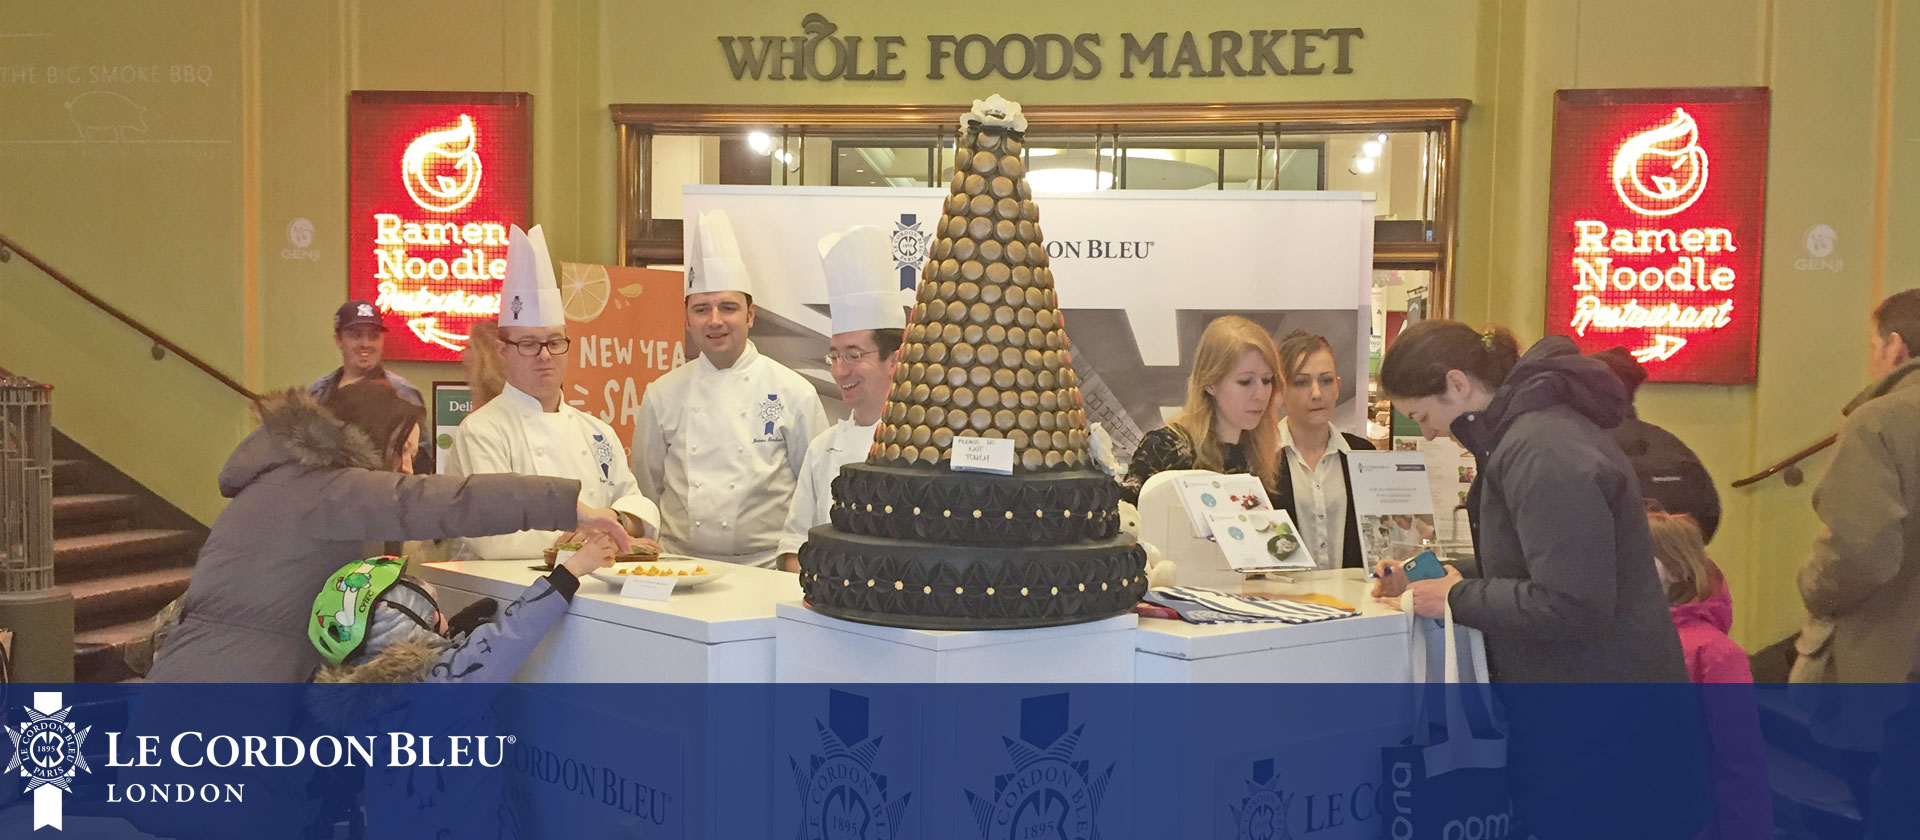 Le Cordon Bleu London at Whole Foods Market, Kensington